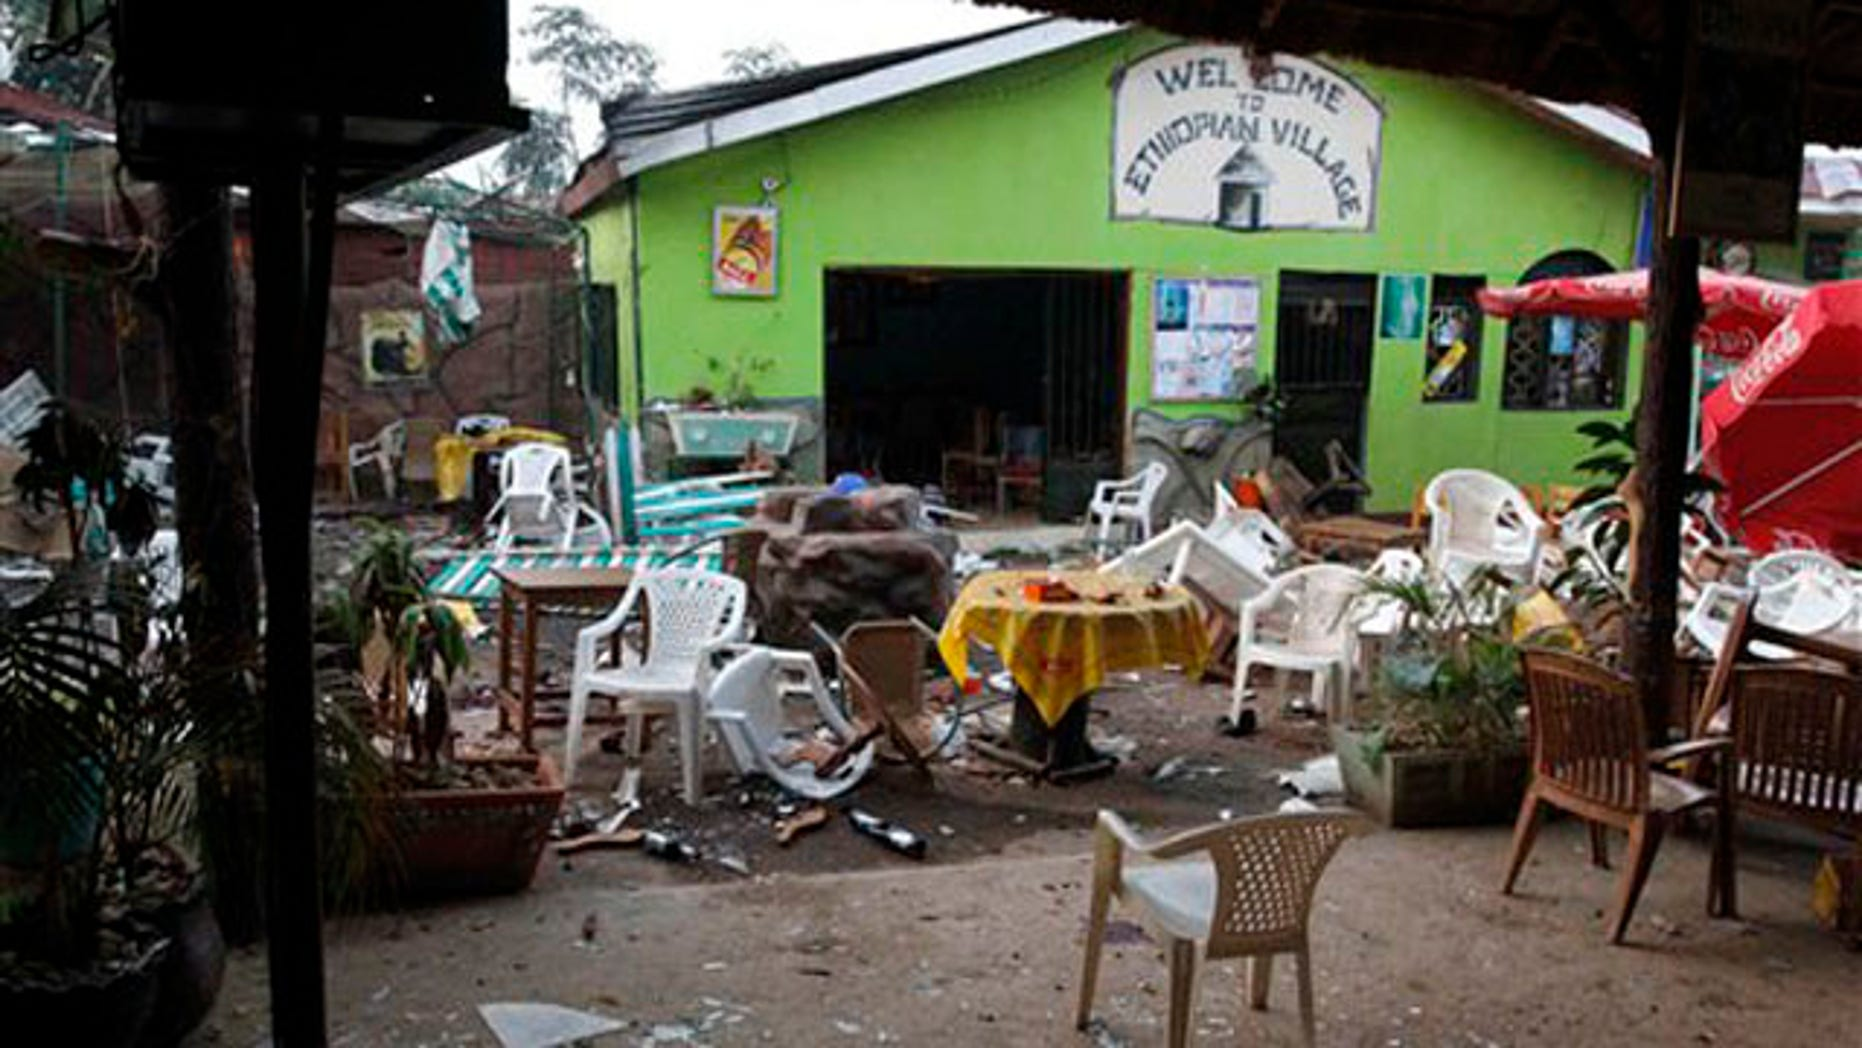 "Damaged chairs and tables are seen among the debris strewn outside the restaurant ""Ethiopian village"" in Kampala, Uganda, July 12 after an explosion at the restaurant late Sunday. (AP Photo)"